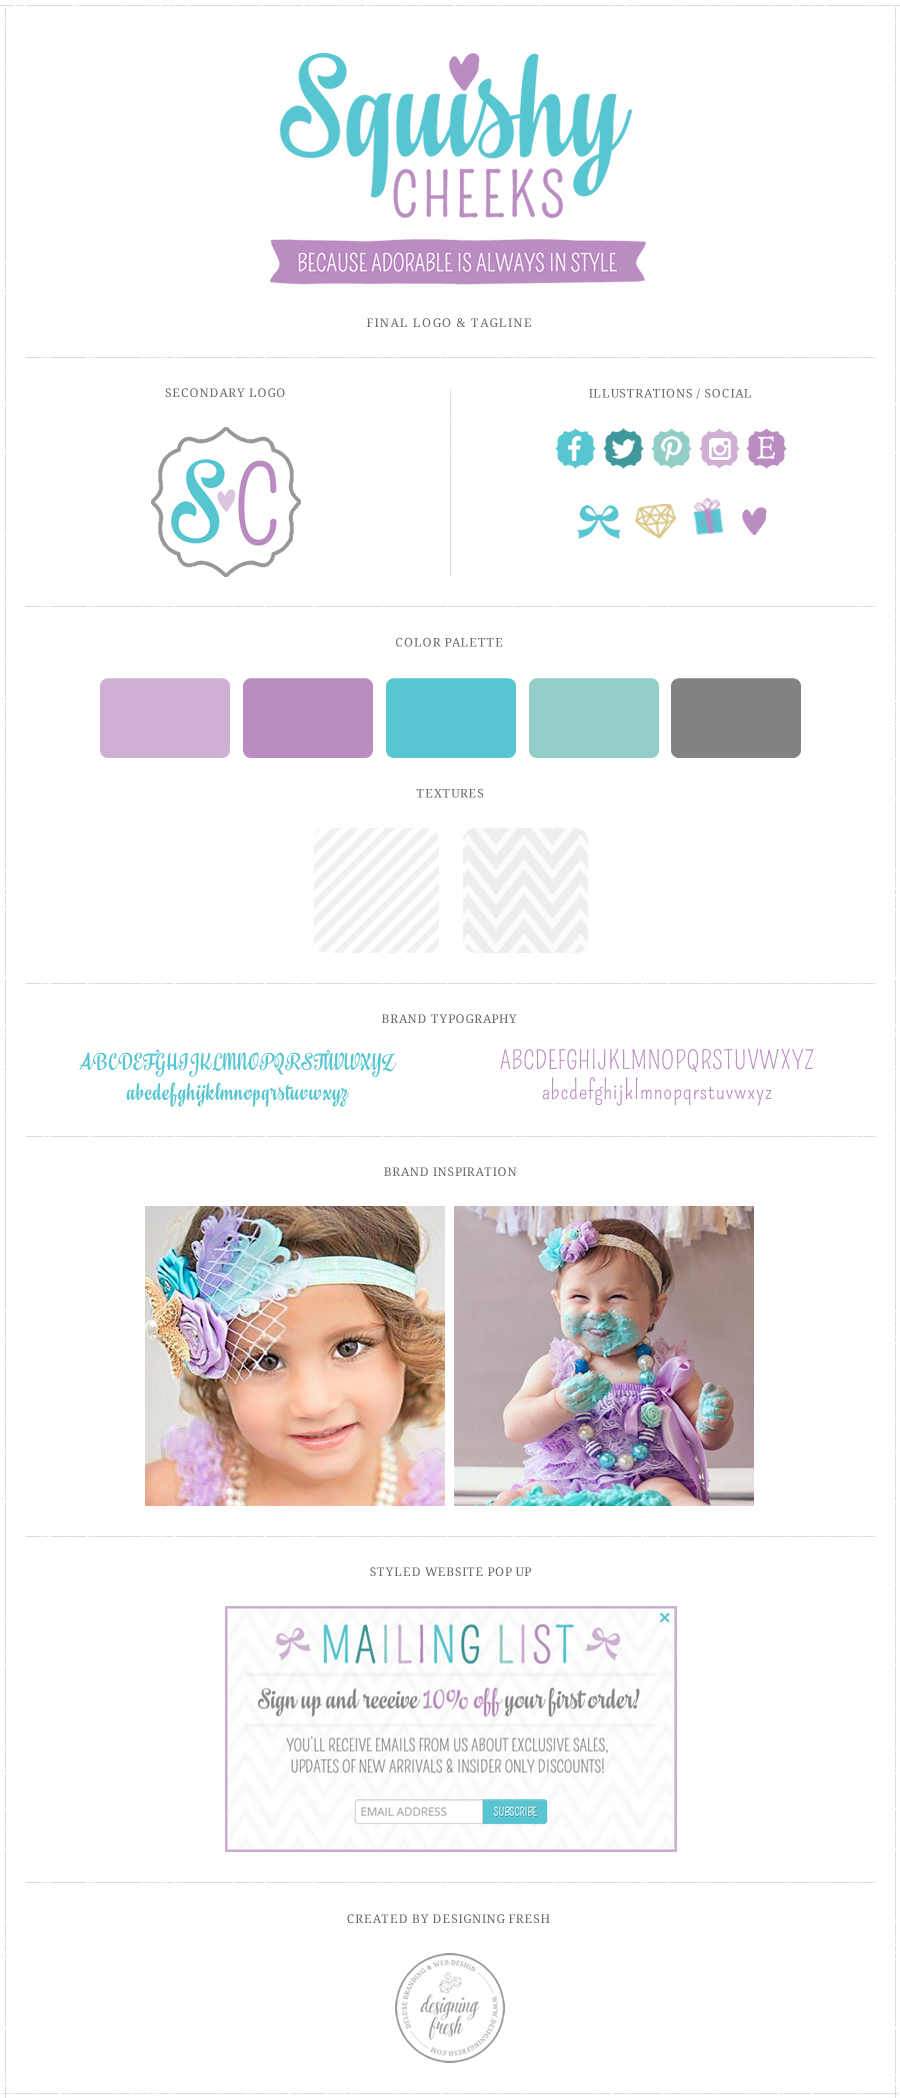 Squishy Websites : Squishy Cheeks Accessories for Baby / Shopify Boutique Web Design